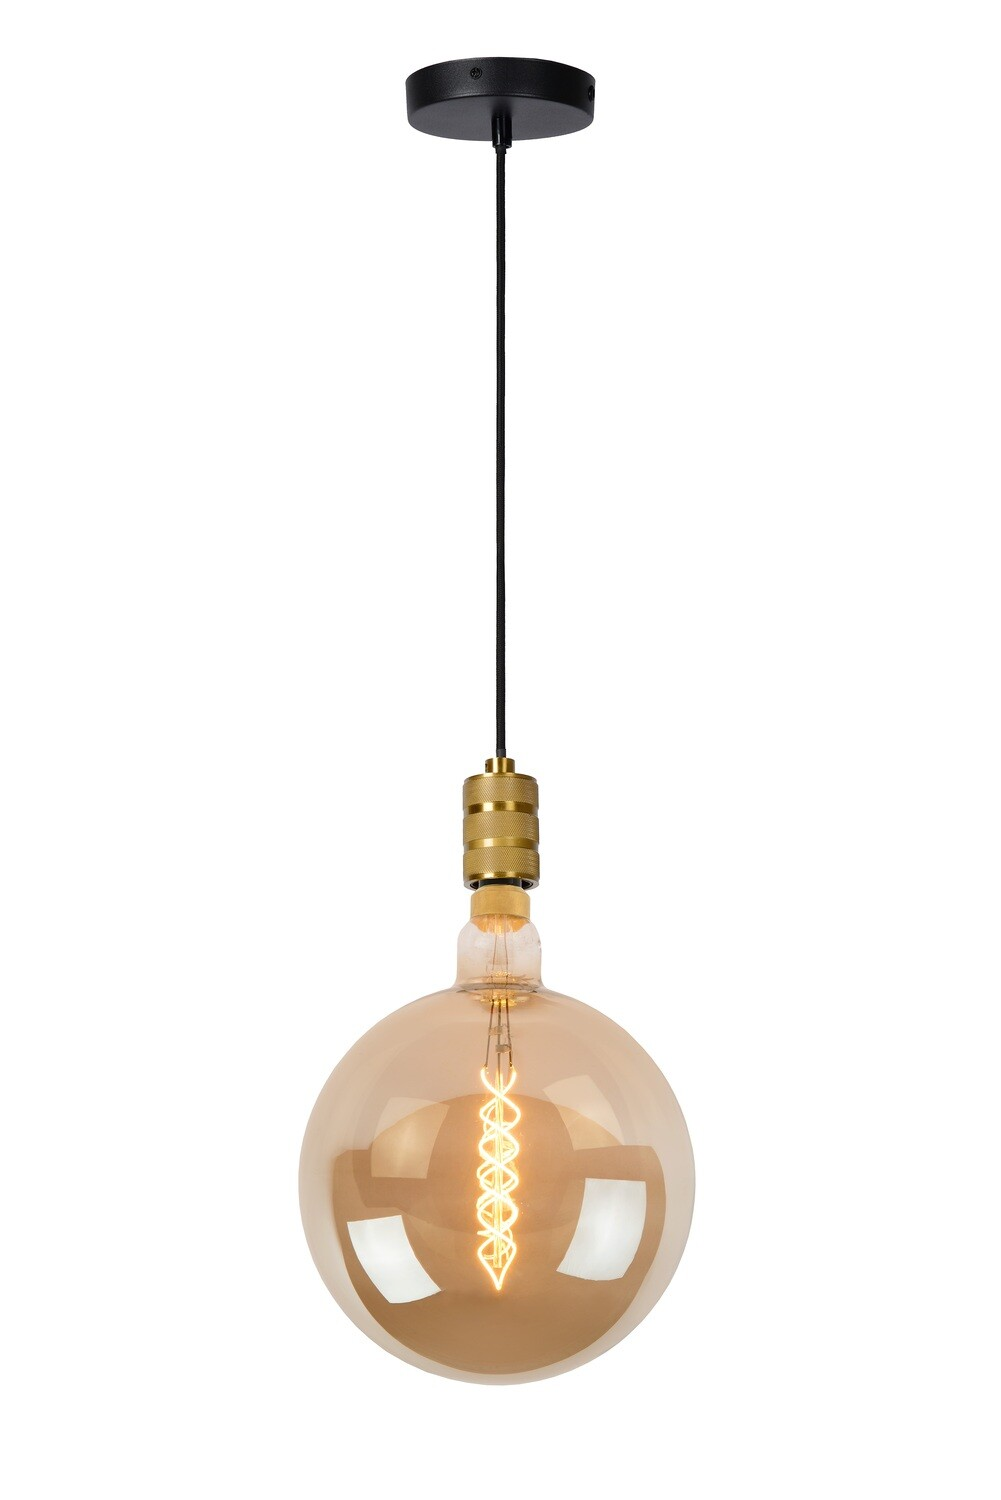 JOVA Pendant E27 Gold with Giant Filament Bulb dimmable